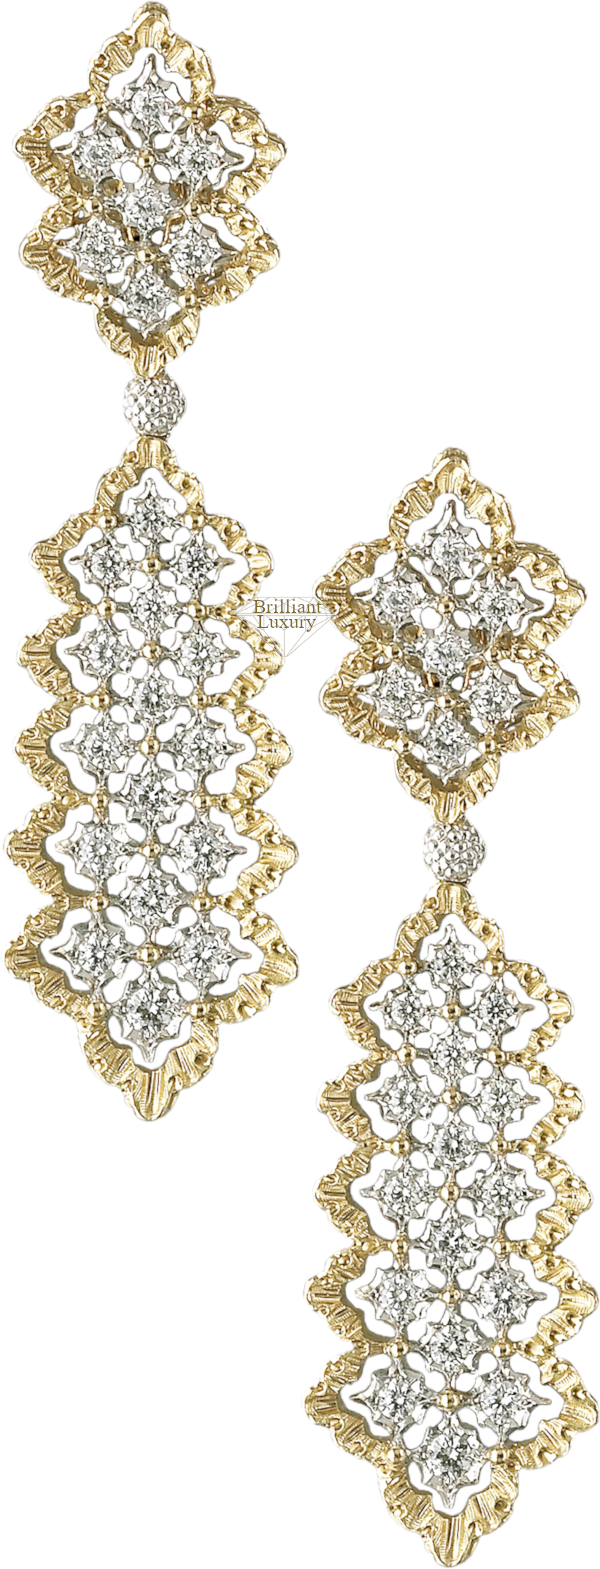 Buccellati Rombi Pendant Earrings #brilliantluxury